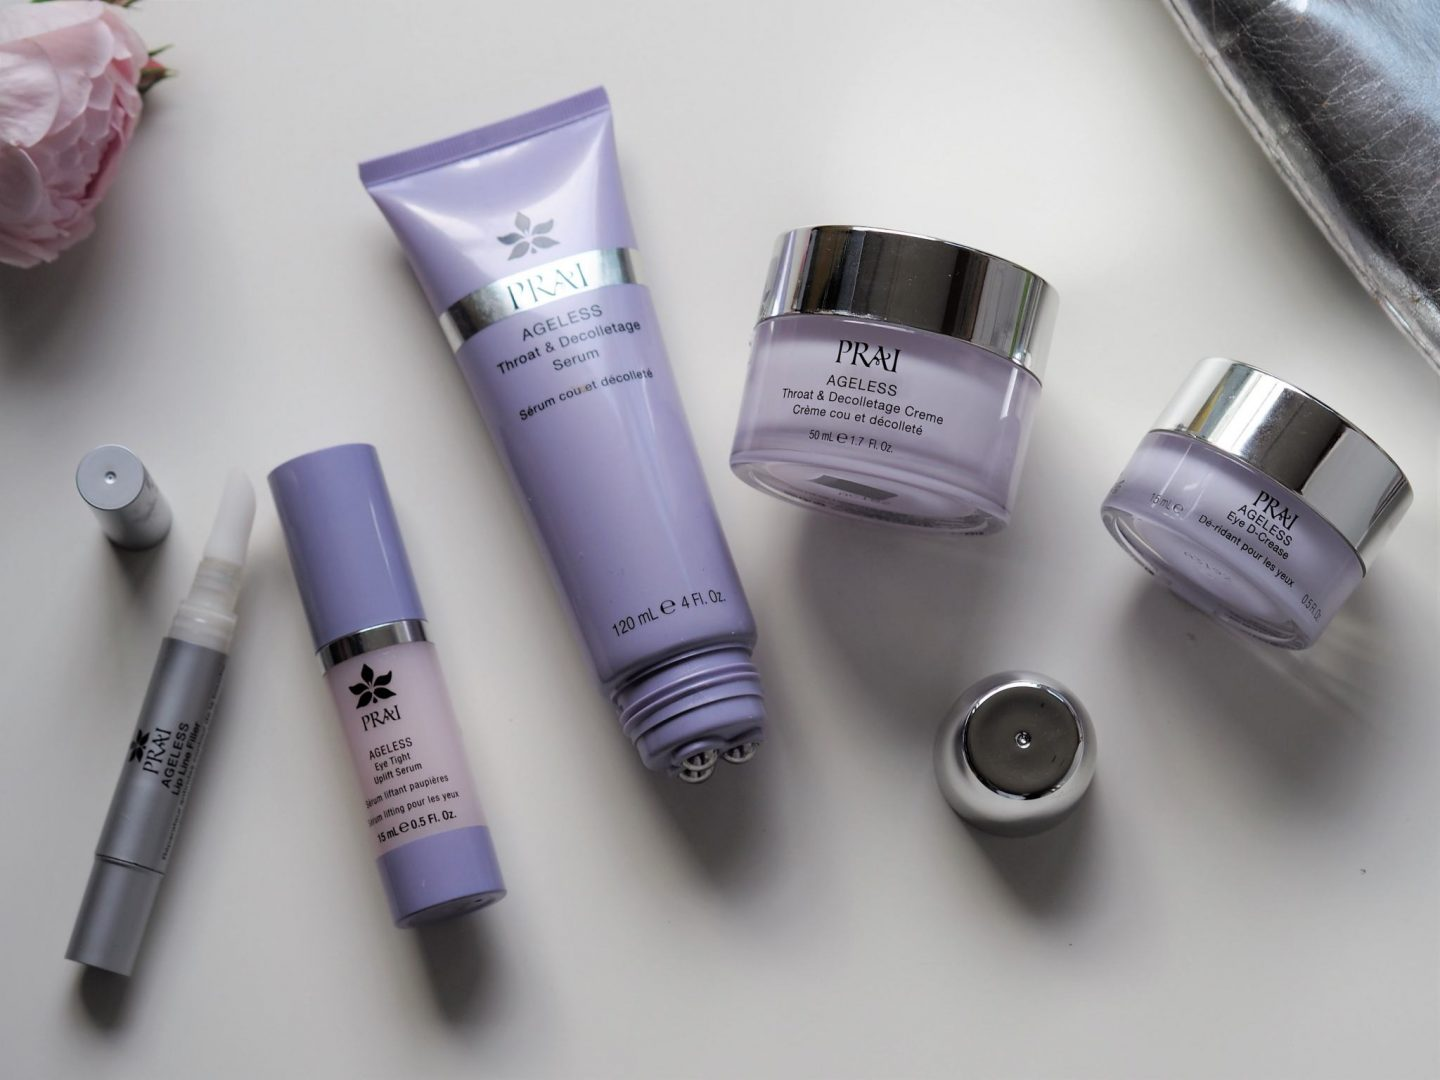 If you read other midlife blogs then I'm sure you will have heard all the hype about the Prai brand? I was really excited to try this skincare brand that I've heard such great things about.